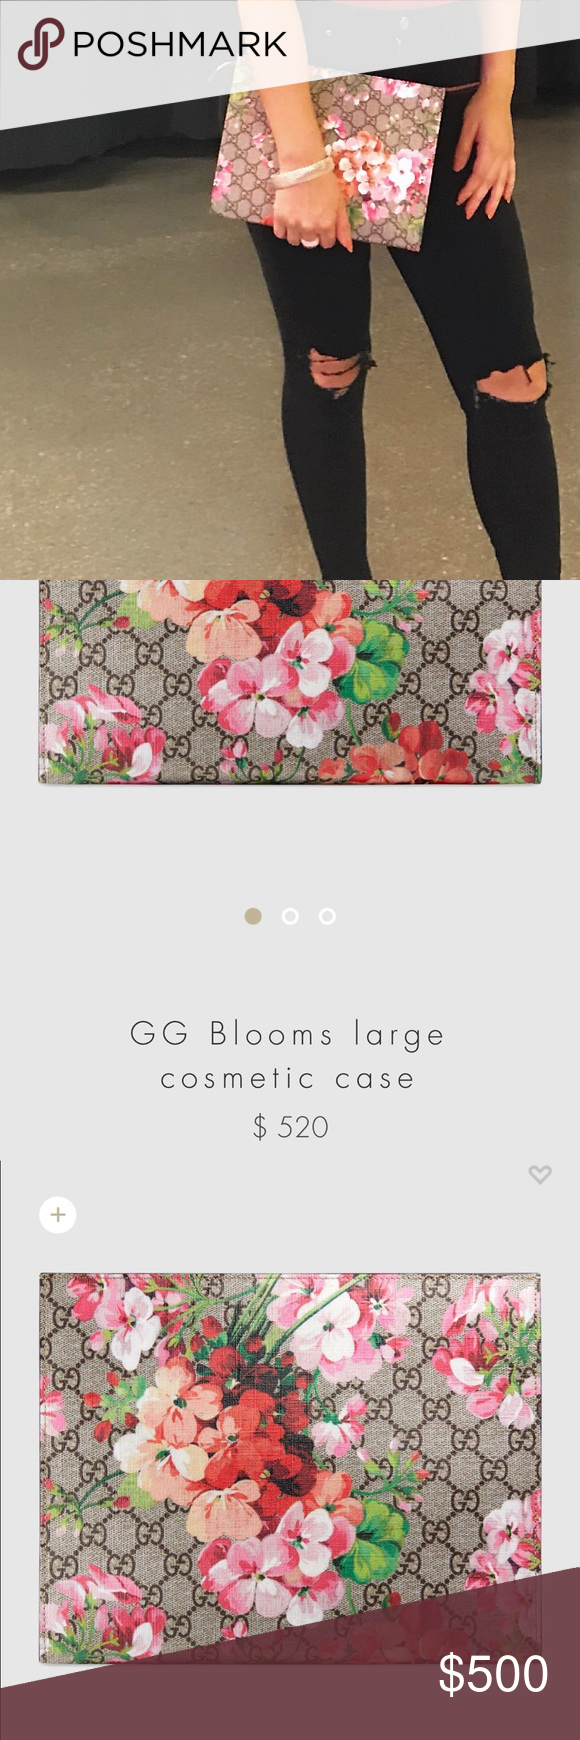 8269ddeee57 GUCCI GUCCI GUCCI Brand new used once. With box bag. Gucci blooms cosmetic  bag 2017 I paid  562.0 Gucci Bags Cosmetic Bags   Cases